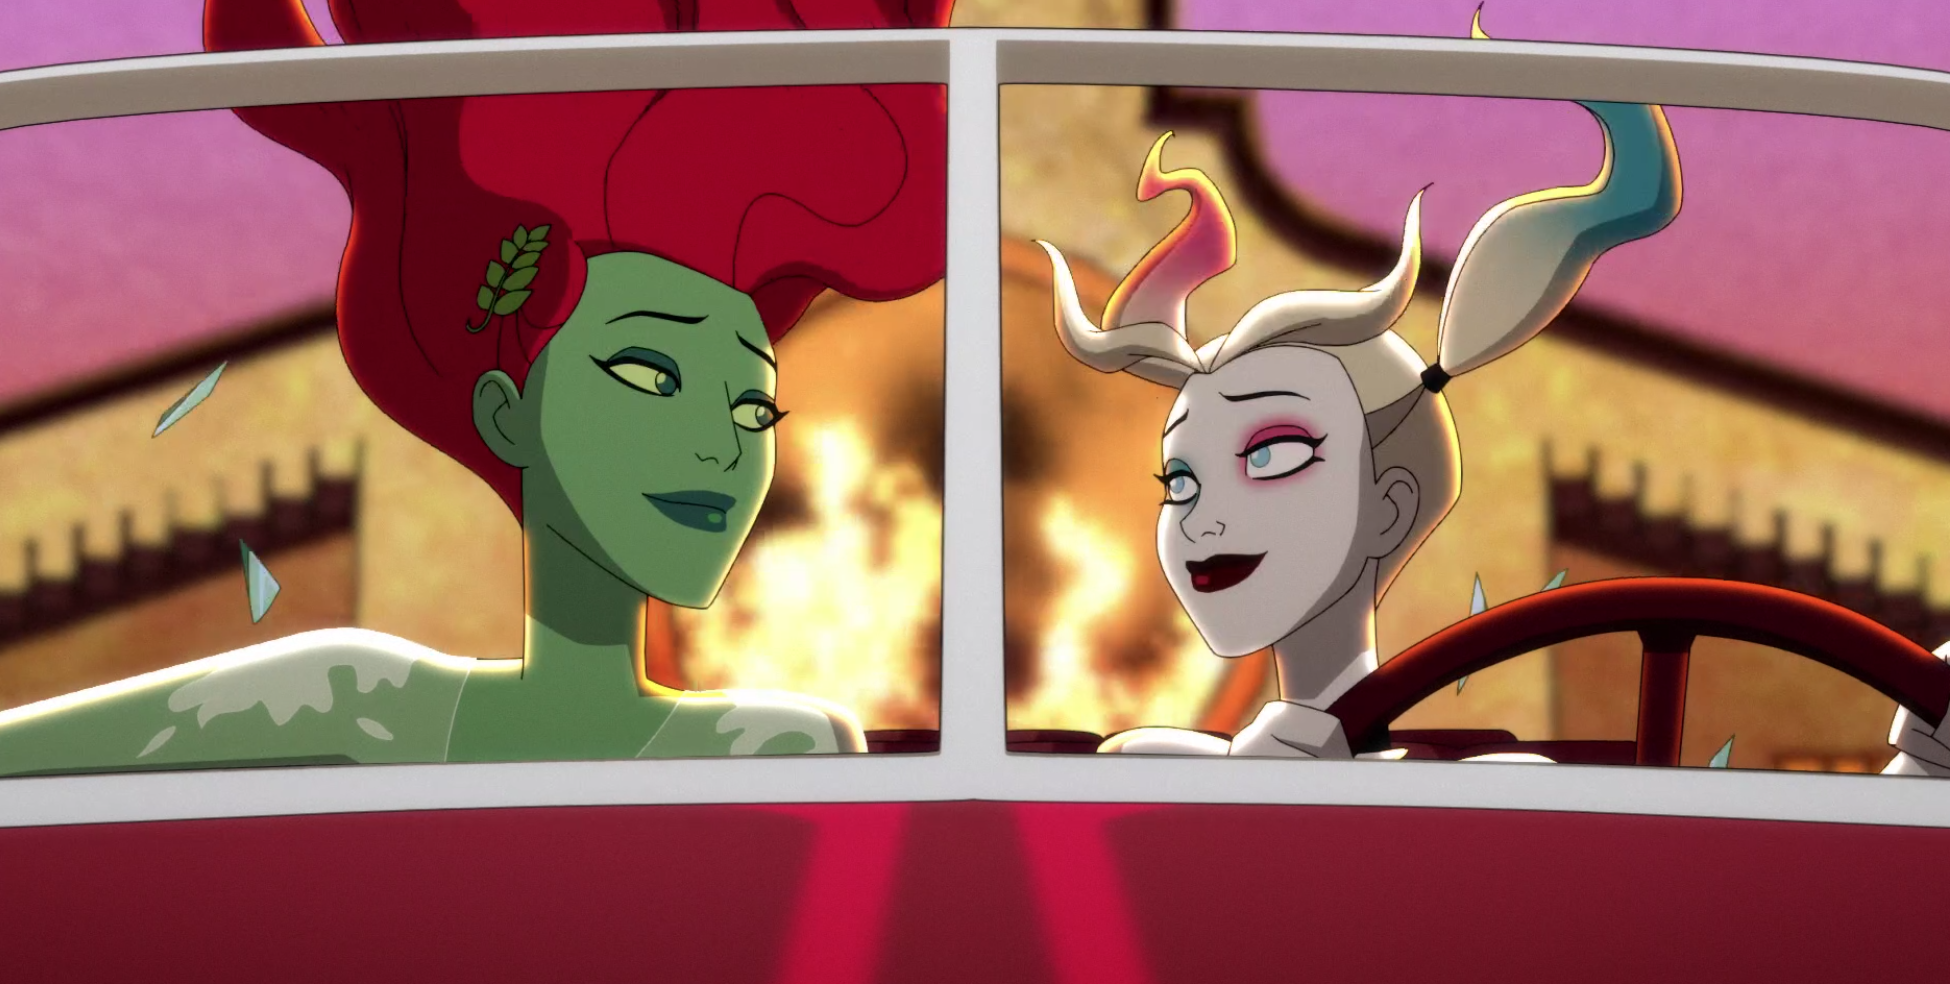 Poison Ivy and Harley looking at each other with an explosion in the background